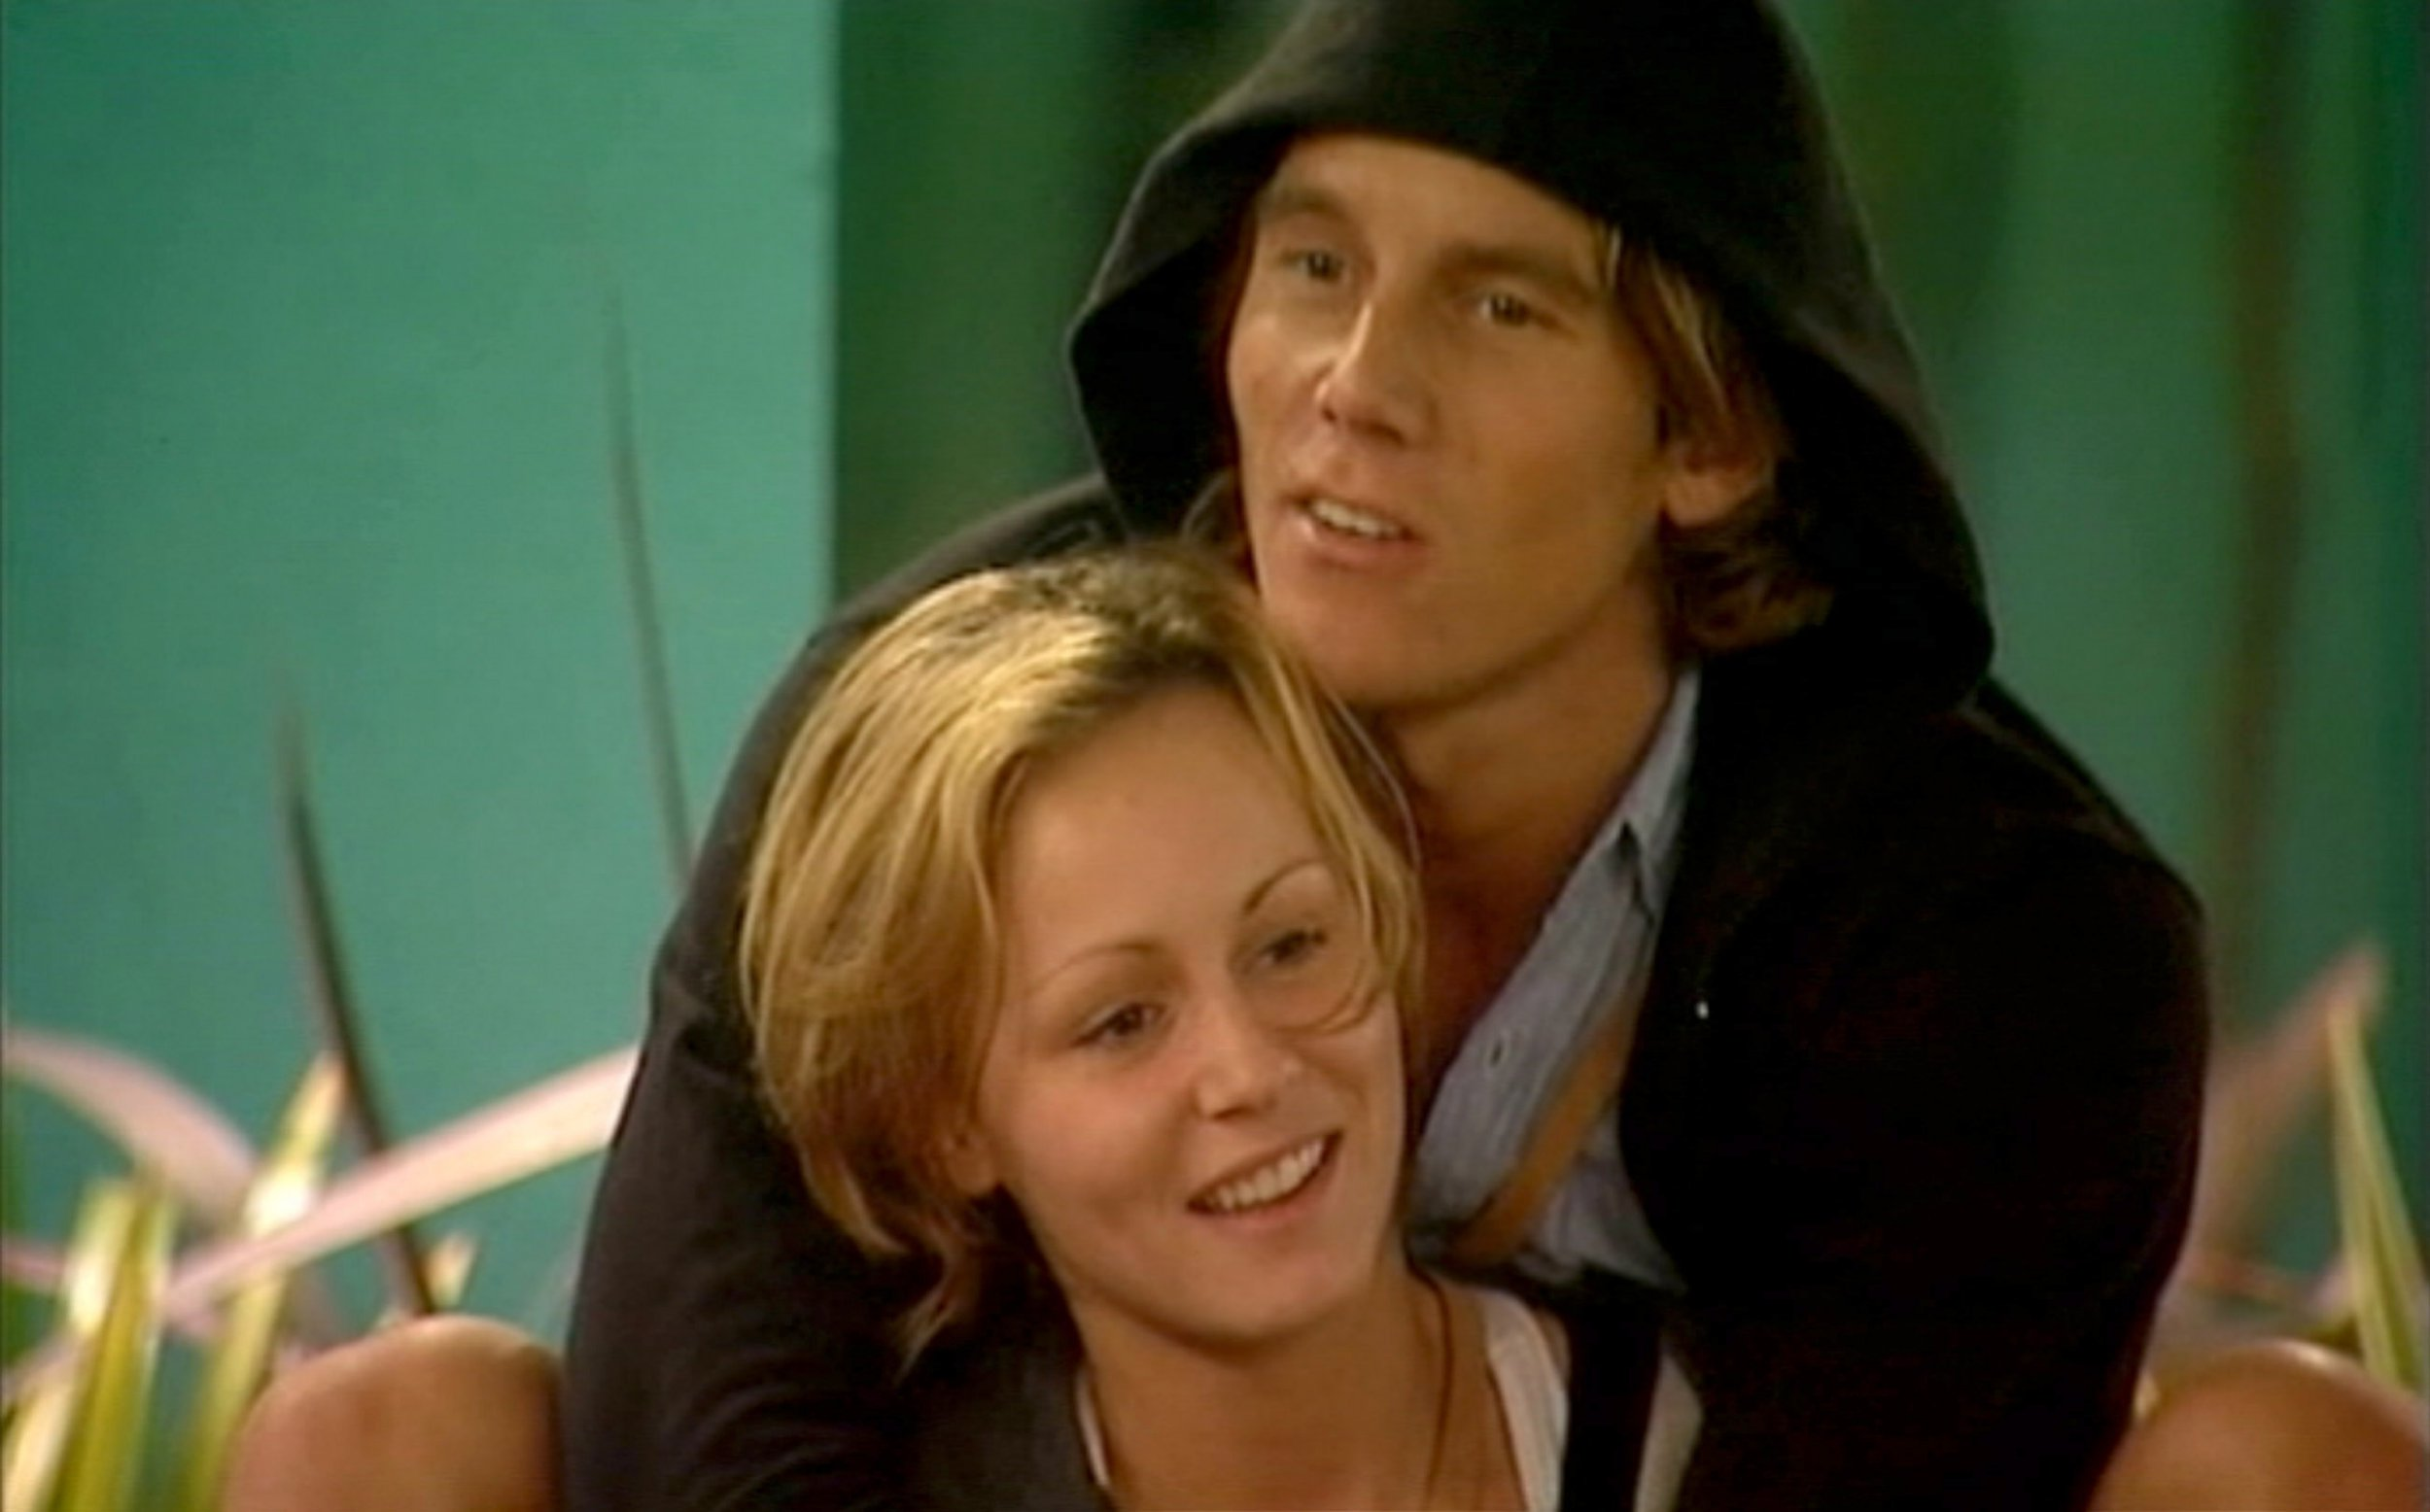 Chanelle Hayes and Ziggy reunited 10 years after Big Brother romance as they spill all on break-up: 'He ghosted me!'